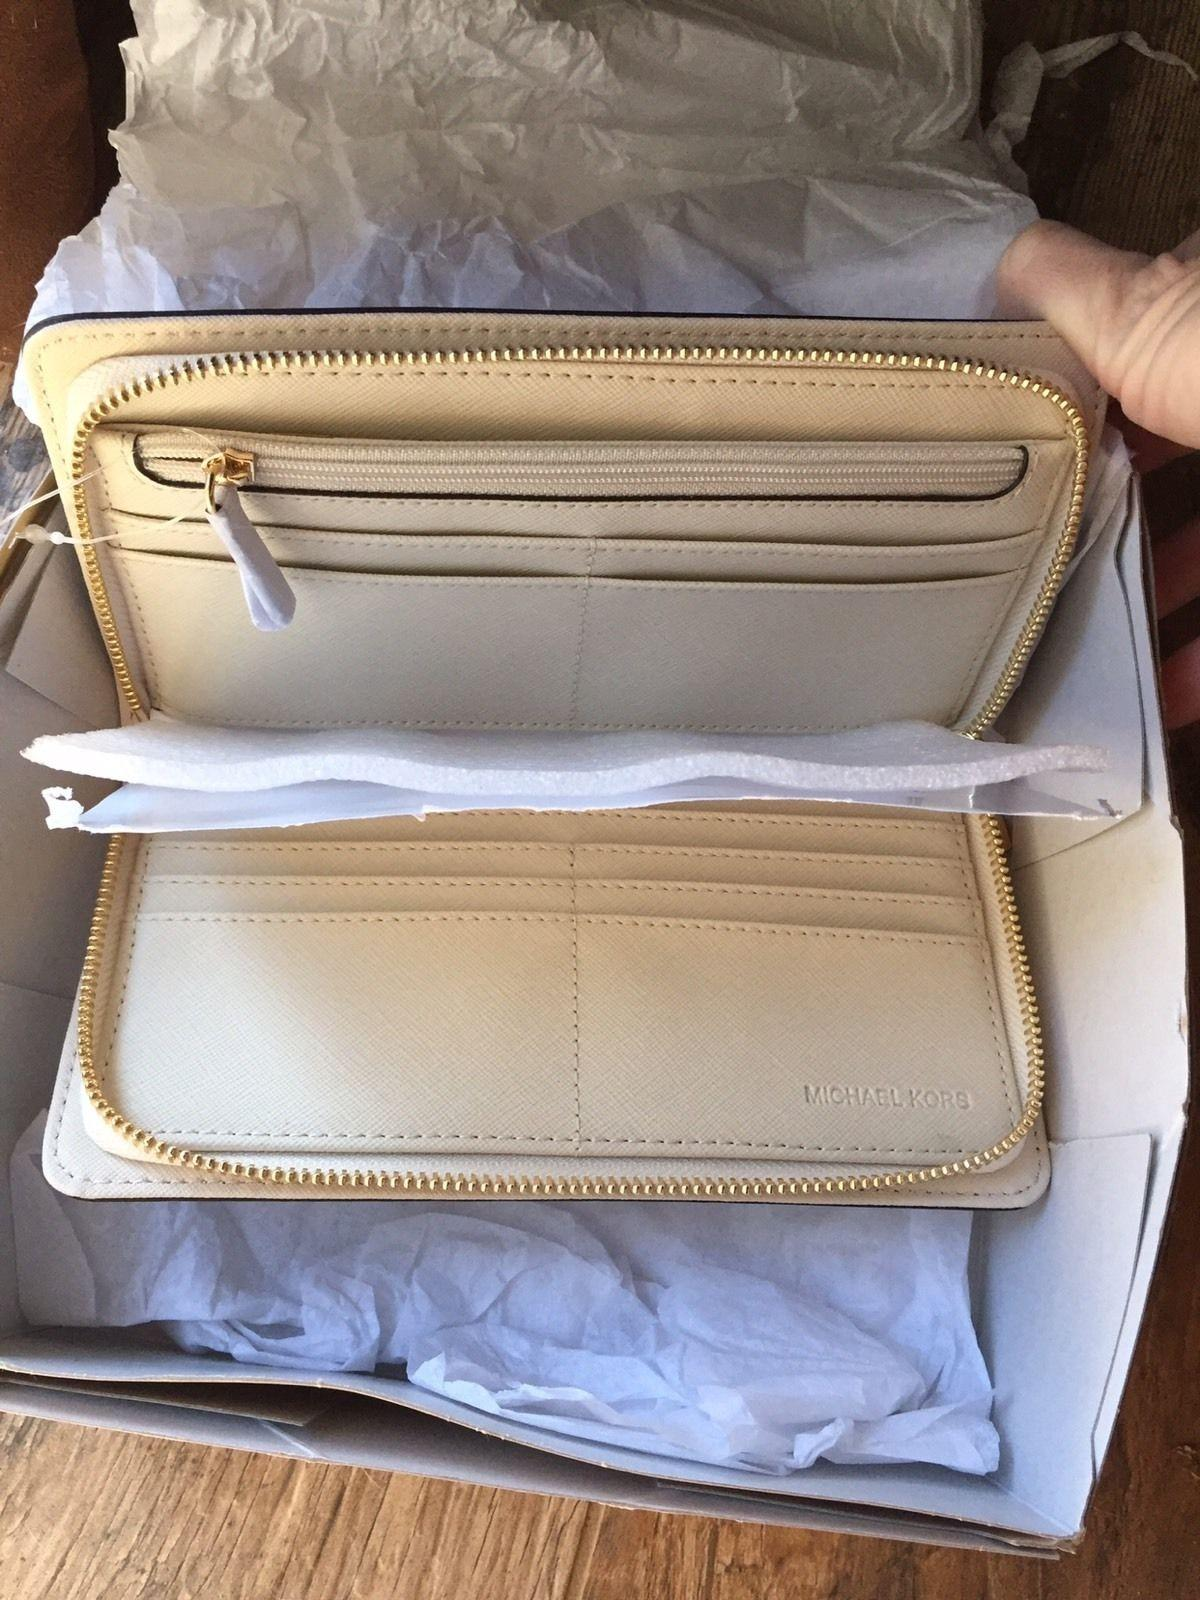 b189d3f77aba ... authentic michael kors large hamilton zip around wallet new with tags  ivory ecru gold tone hardware